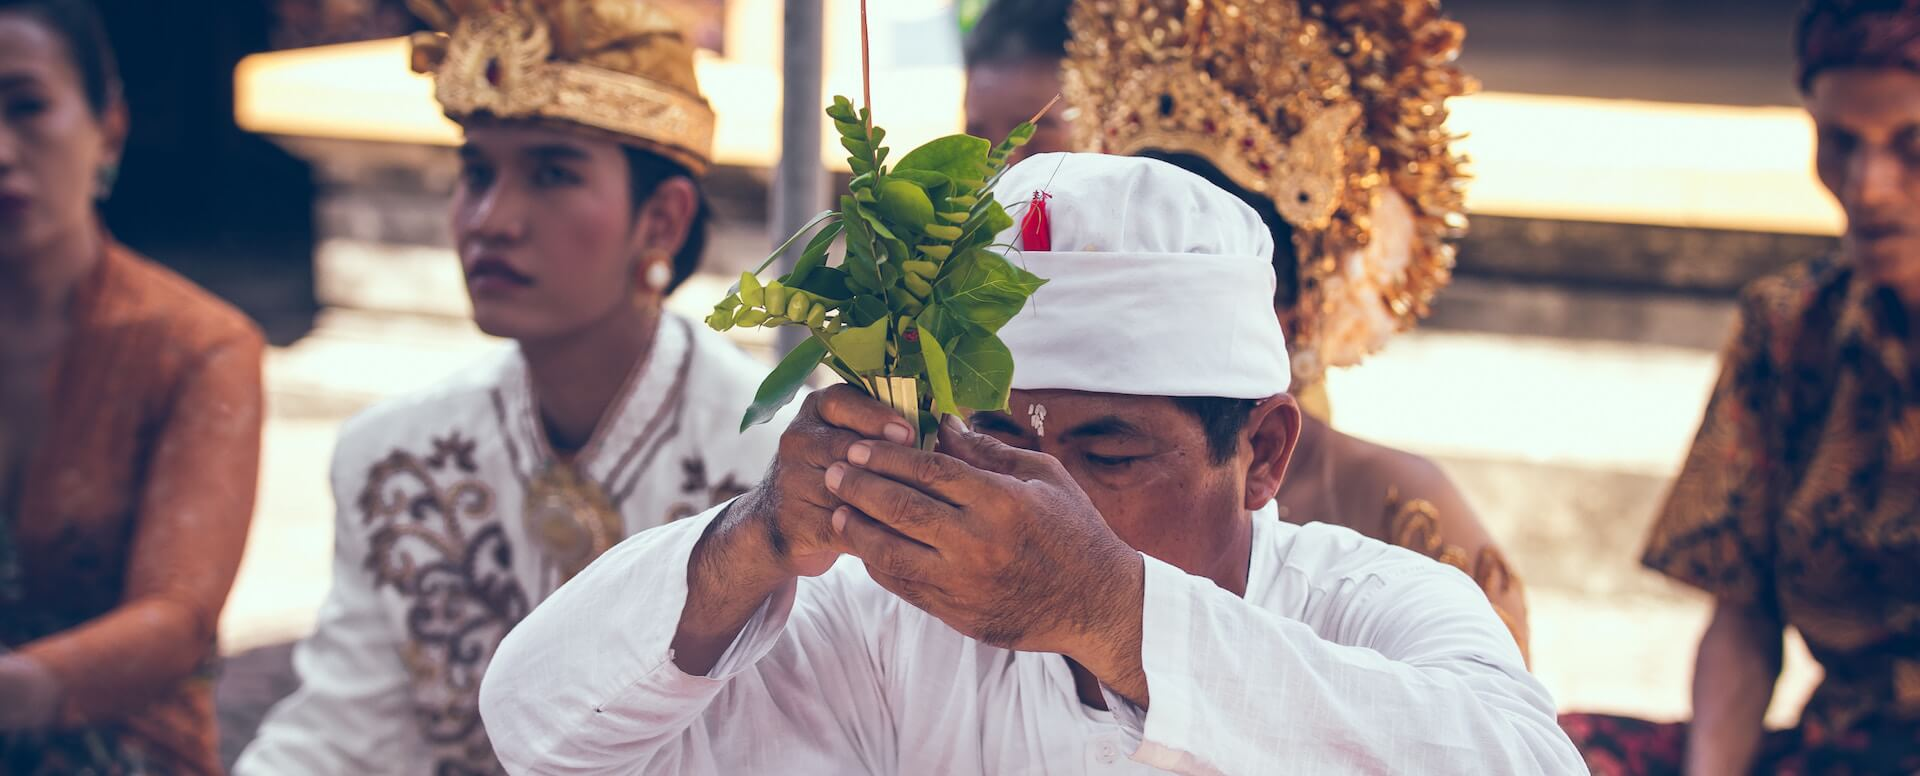 What to do and what not to do in Indonesia - Indonesia